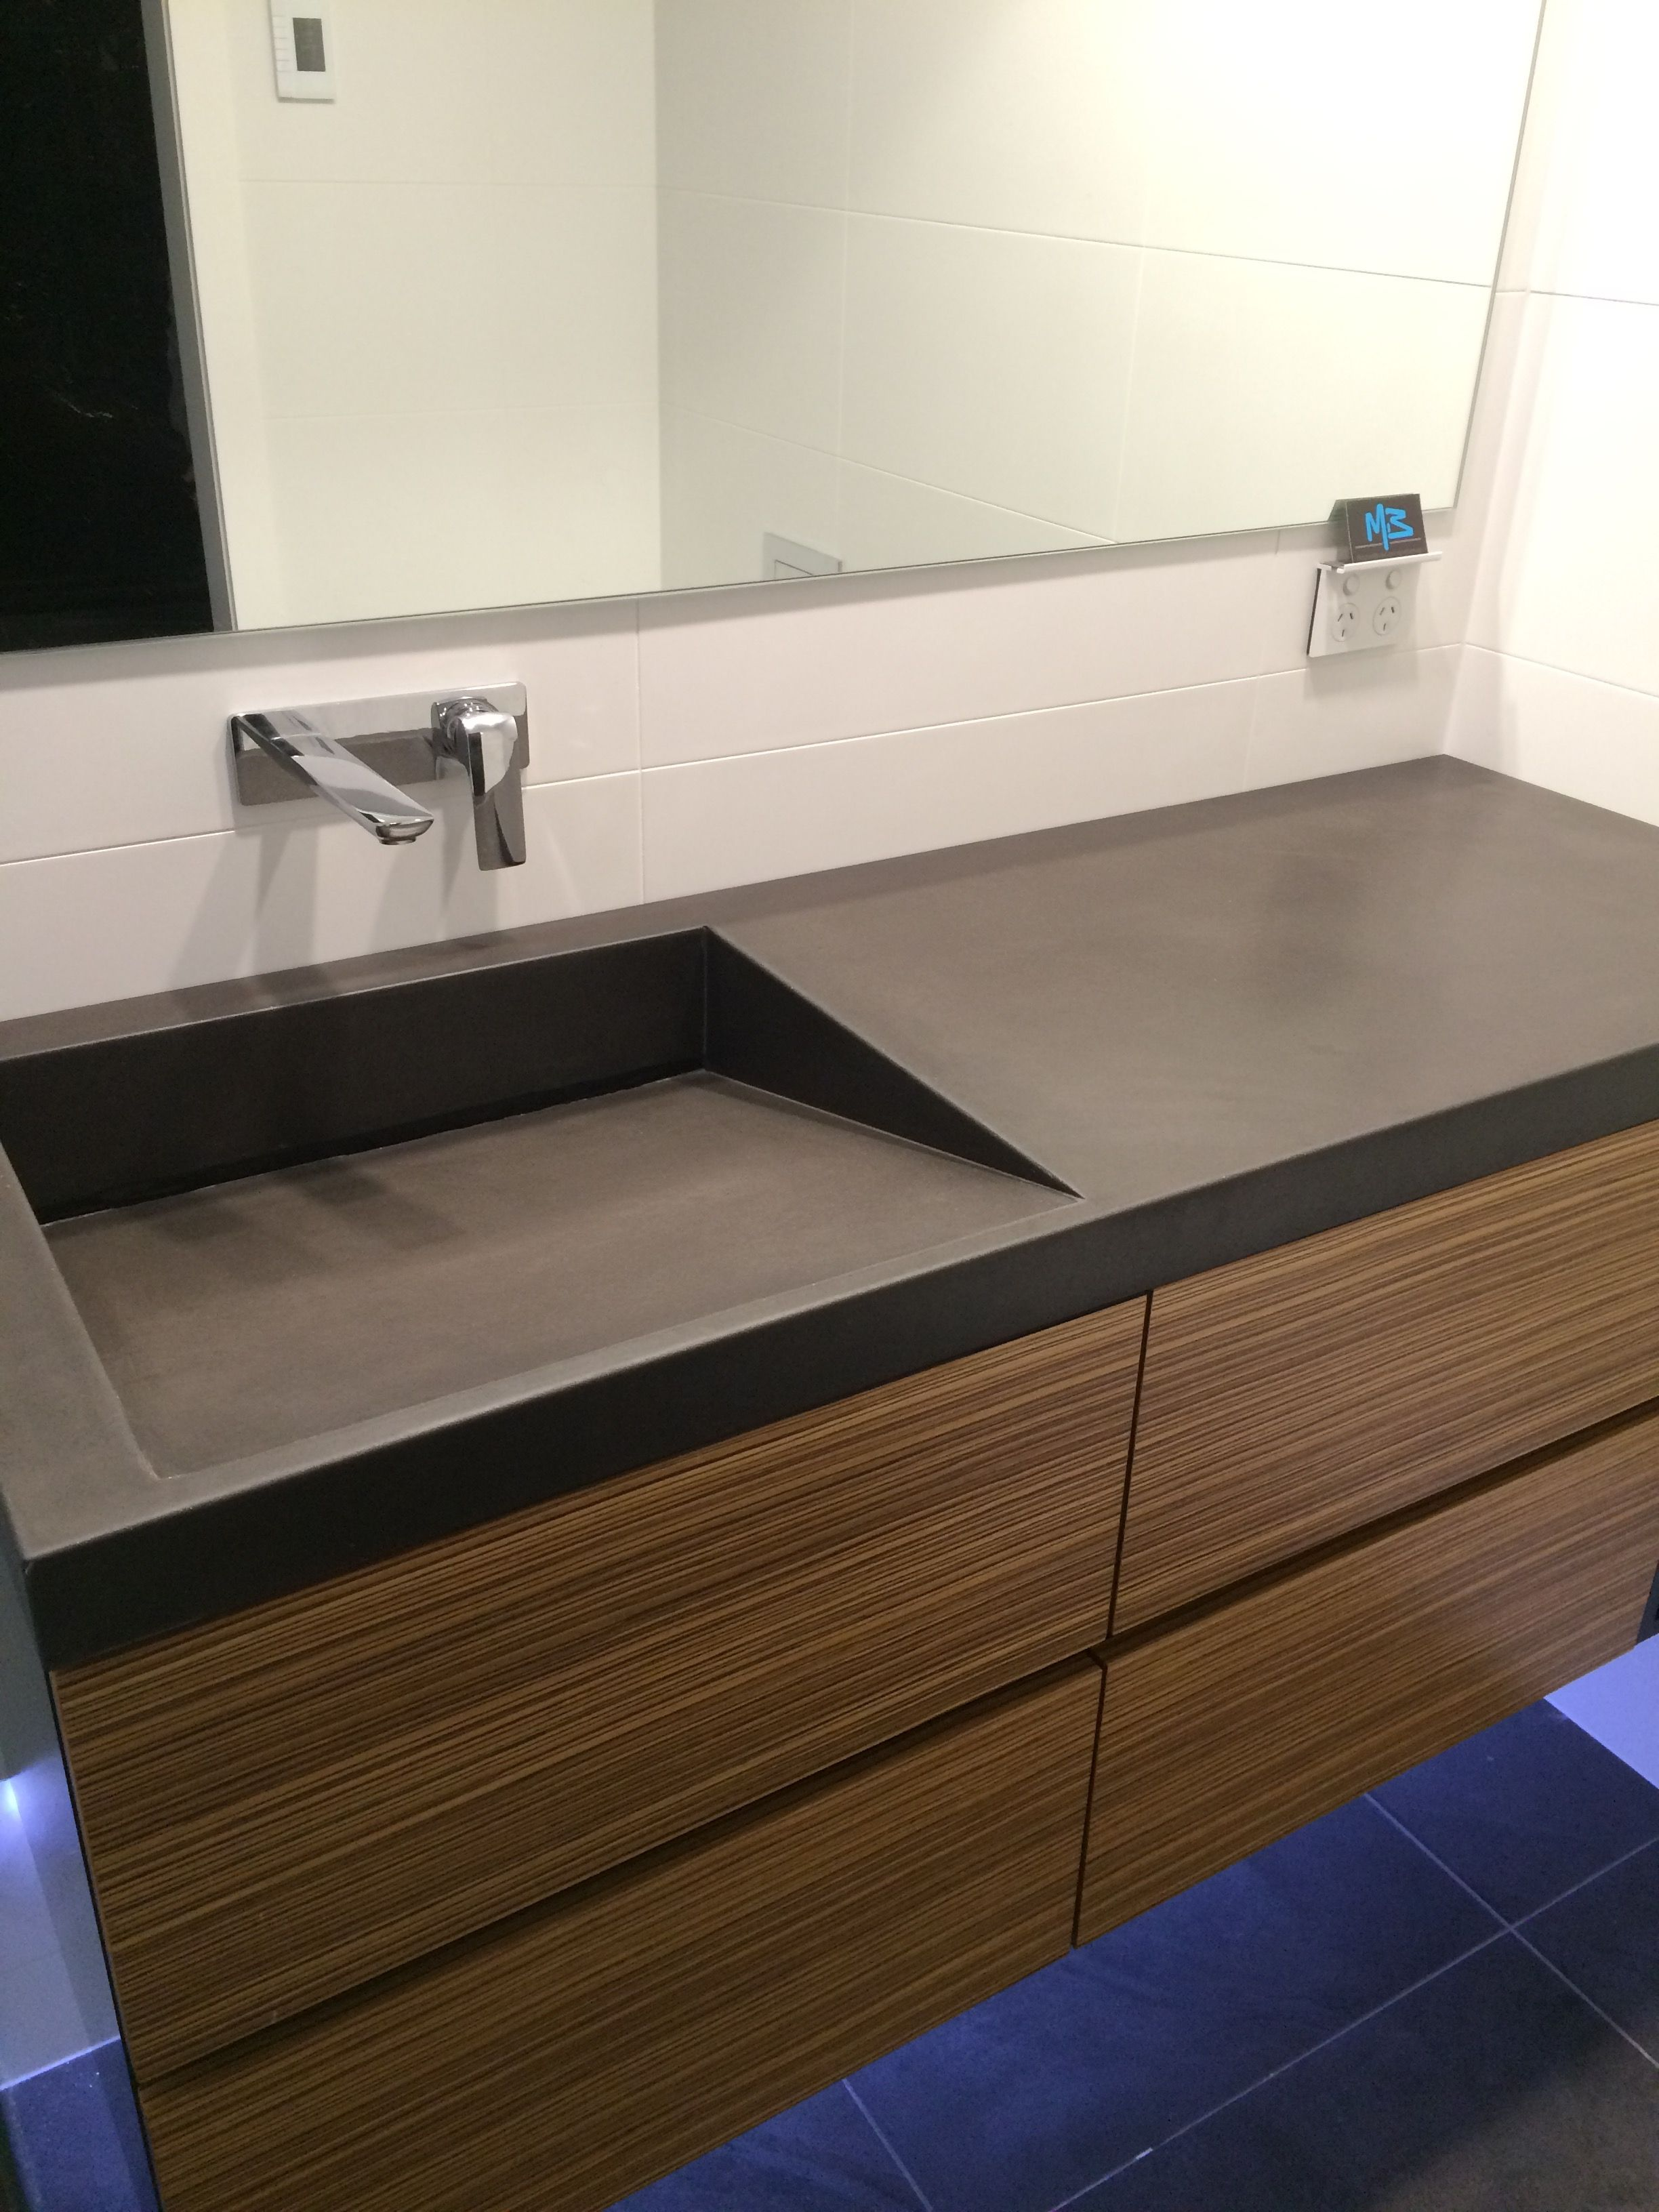 concrete kitchen sink windows over polished vanity top with integrated by